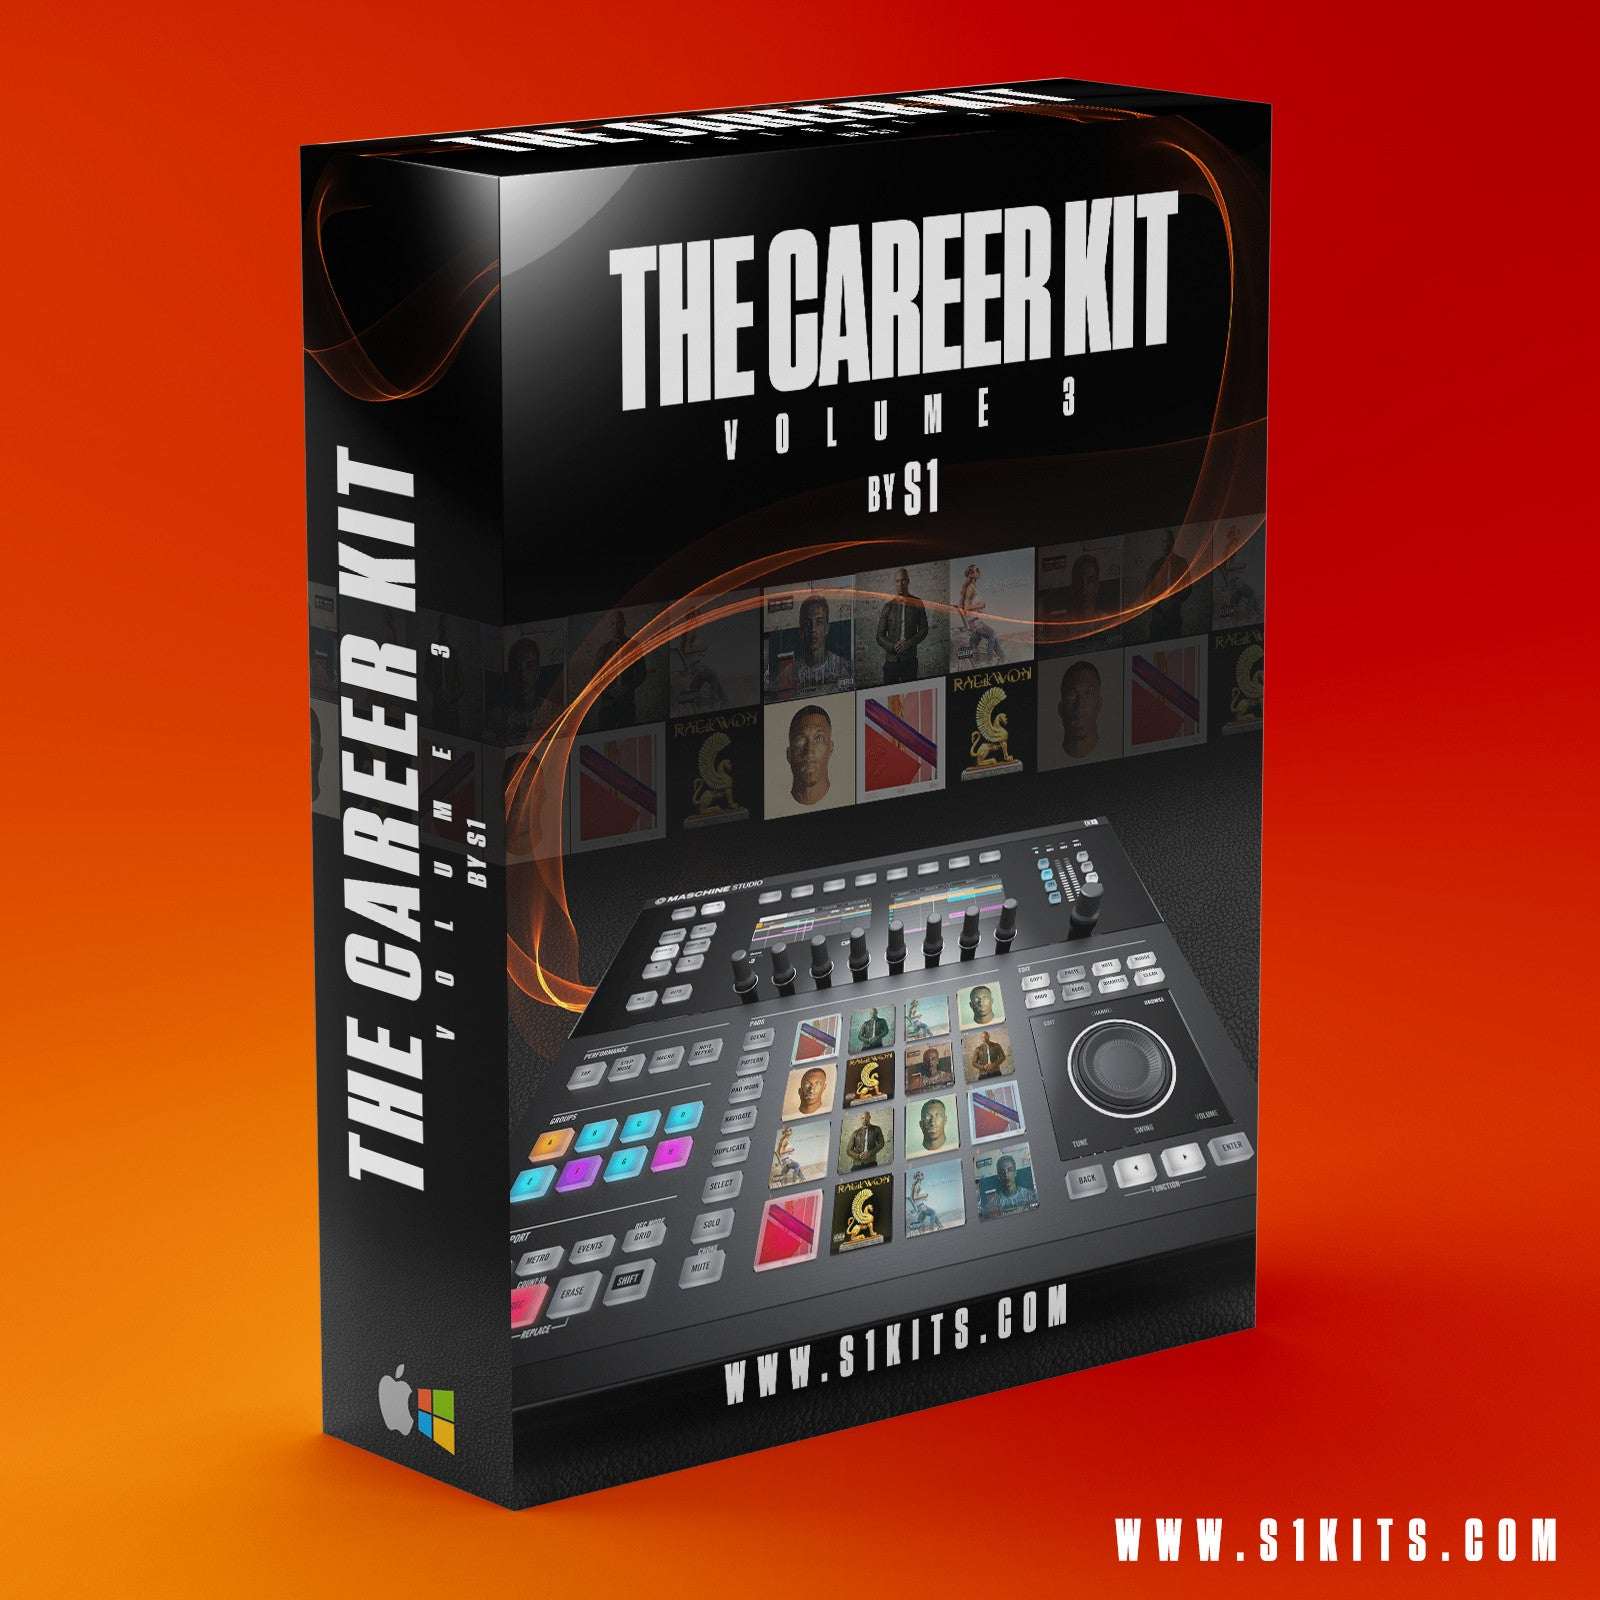 The Career Kit Vol 3